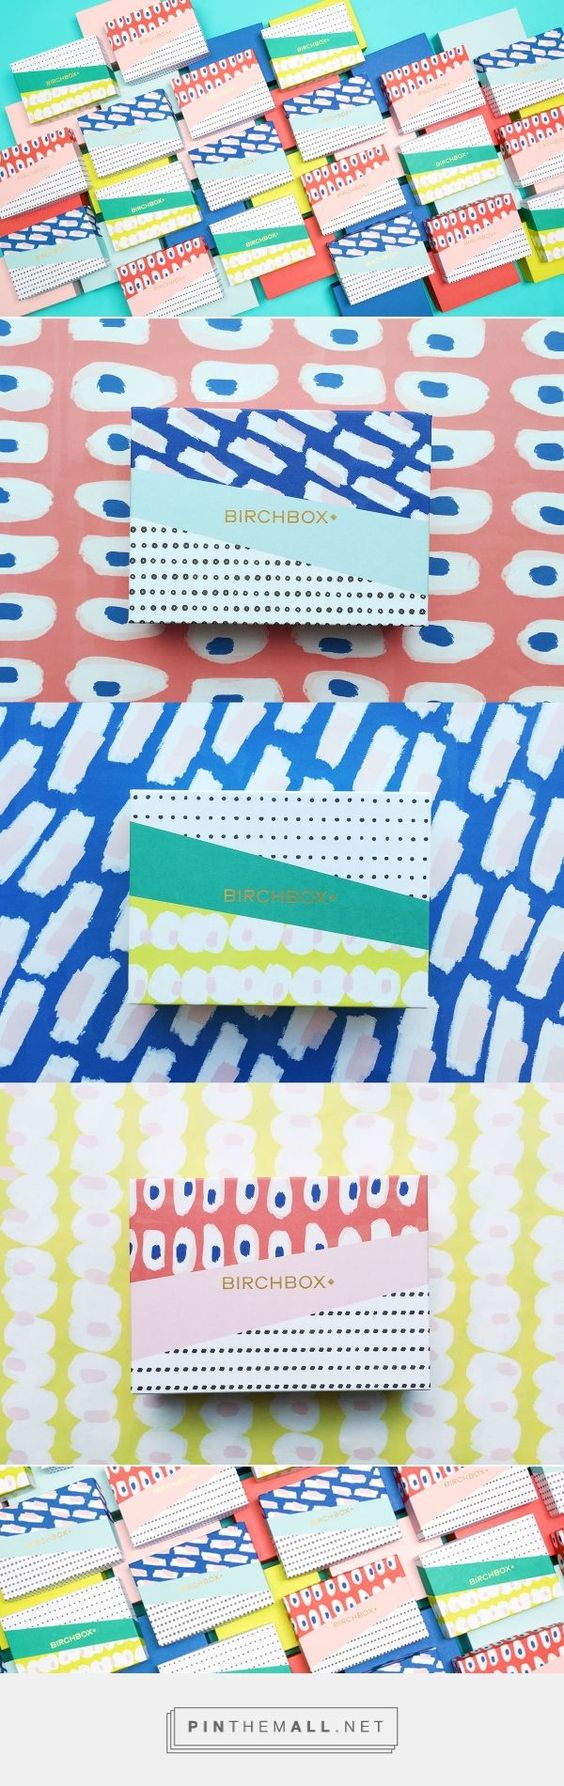 Birchbox Pattern Example